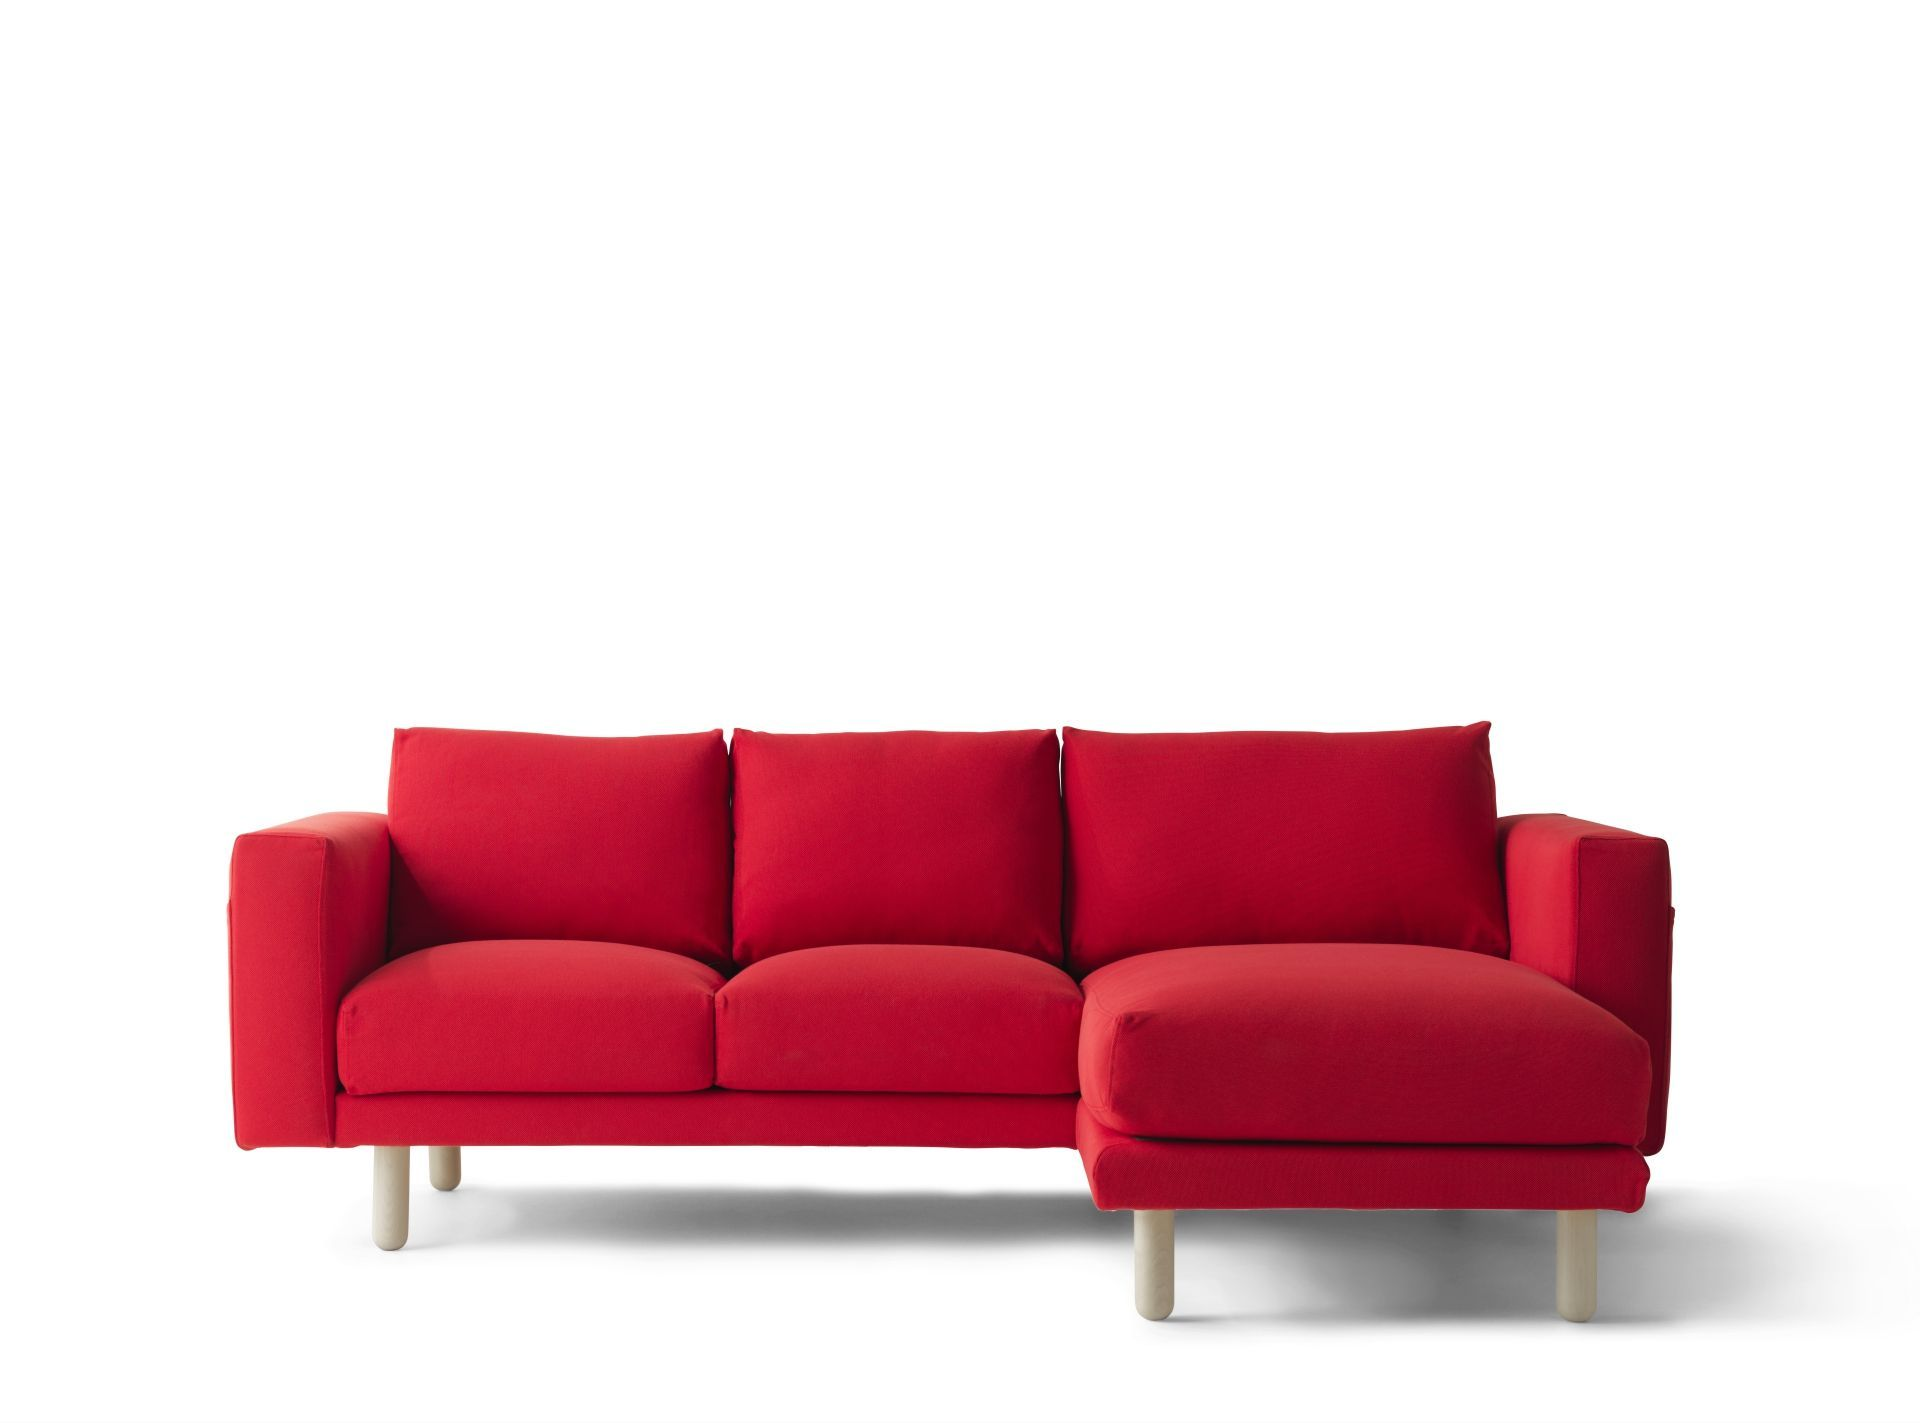 Norsborg 2 Sitzer Sofa Mit Chaiselongue Ikeacatalogue New 2017 Ikea Ikean 2sitzersofa Chaiselongue Ikea Ikeacatalogue Ikean Mit Norsborg